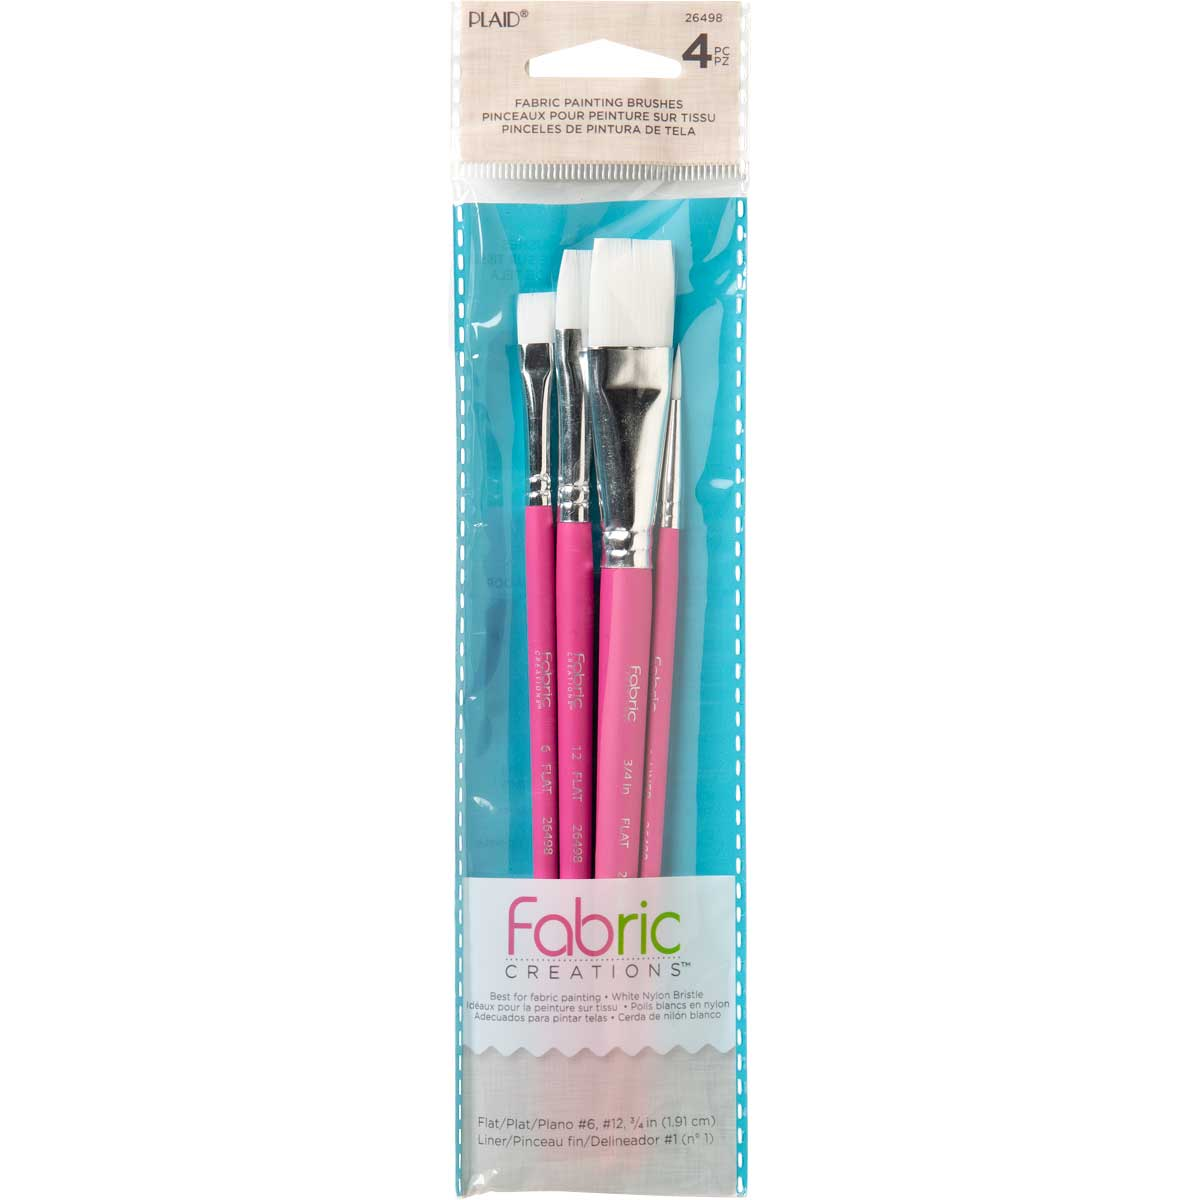 Fabric Creations™ Brush Set - Fabric Painting Set - 26498